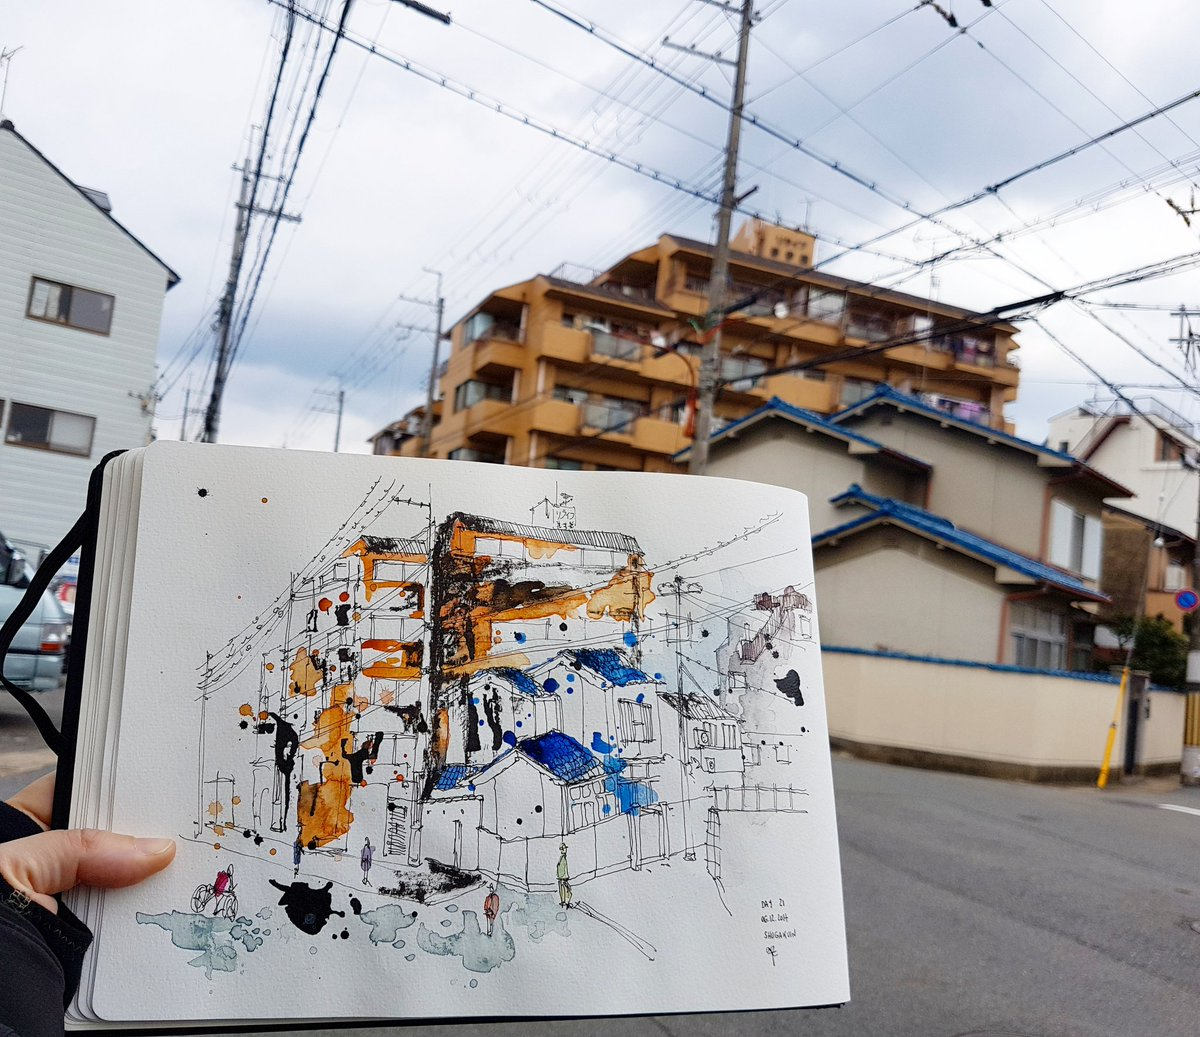 #gizetaworks #kyoto #japan #archigraphicarts #architecture #building #livesketching #global_sketchers #sketching #sketch_daily #アート #イラスト #イタリア #travelsketch #sketchbook #京都 #日本 #instaart #inkcember #penandink #followme #painting #水彩画pic.twitter.com/b7m5NdwmEX